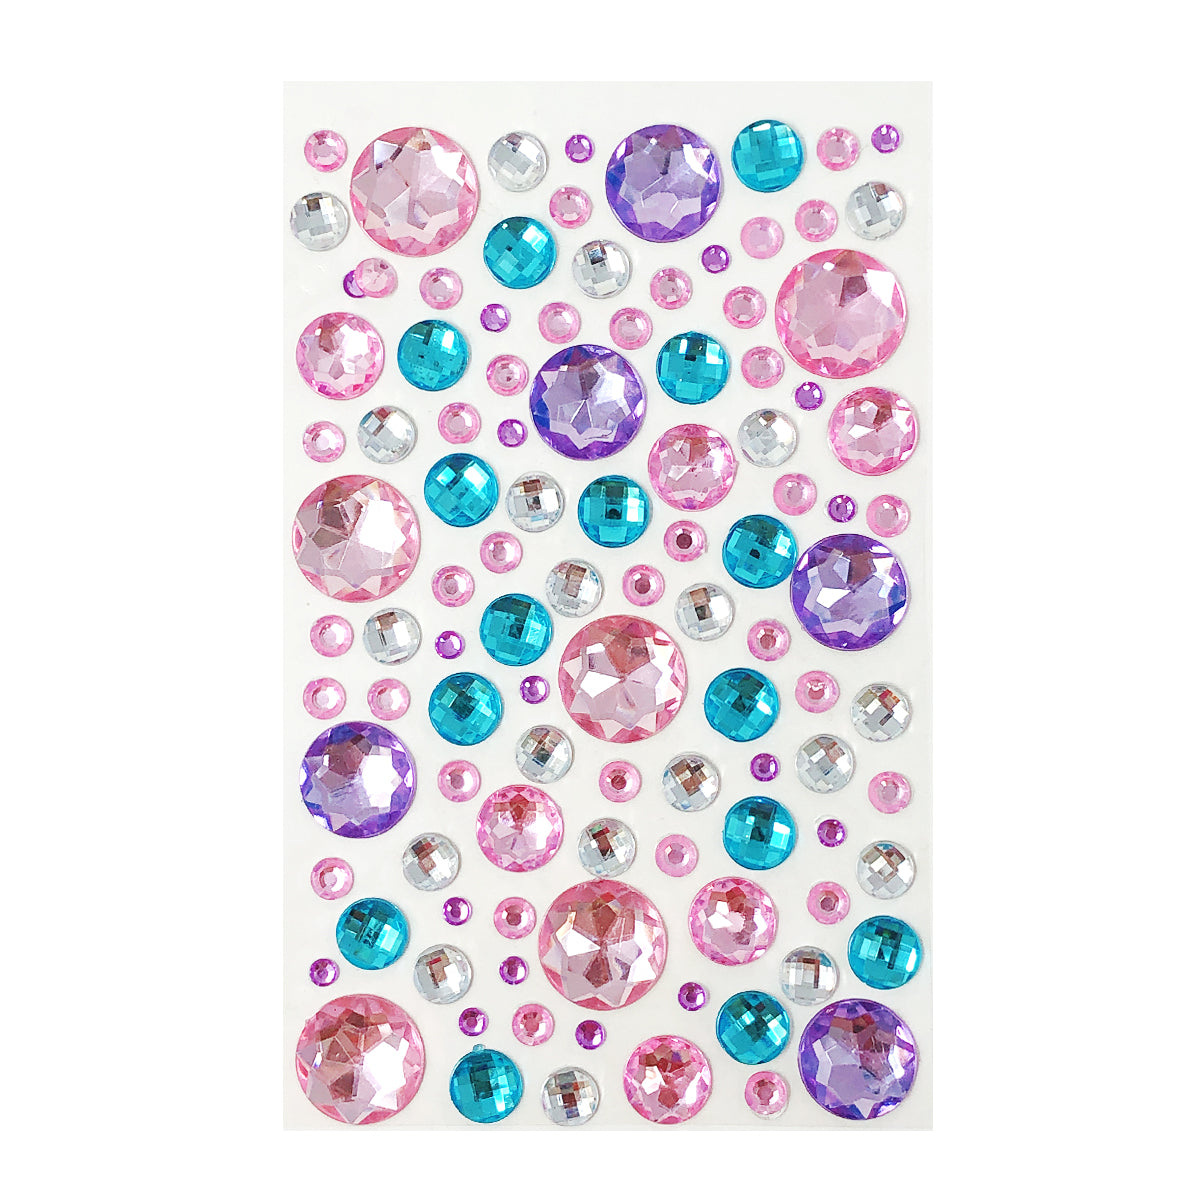 Wrapables Acrylic Self Adhesive Crystal Rhinestone Gem Stickers, Stars Pink Blue Lilac